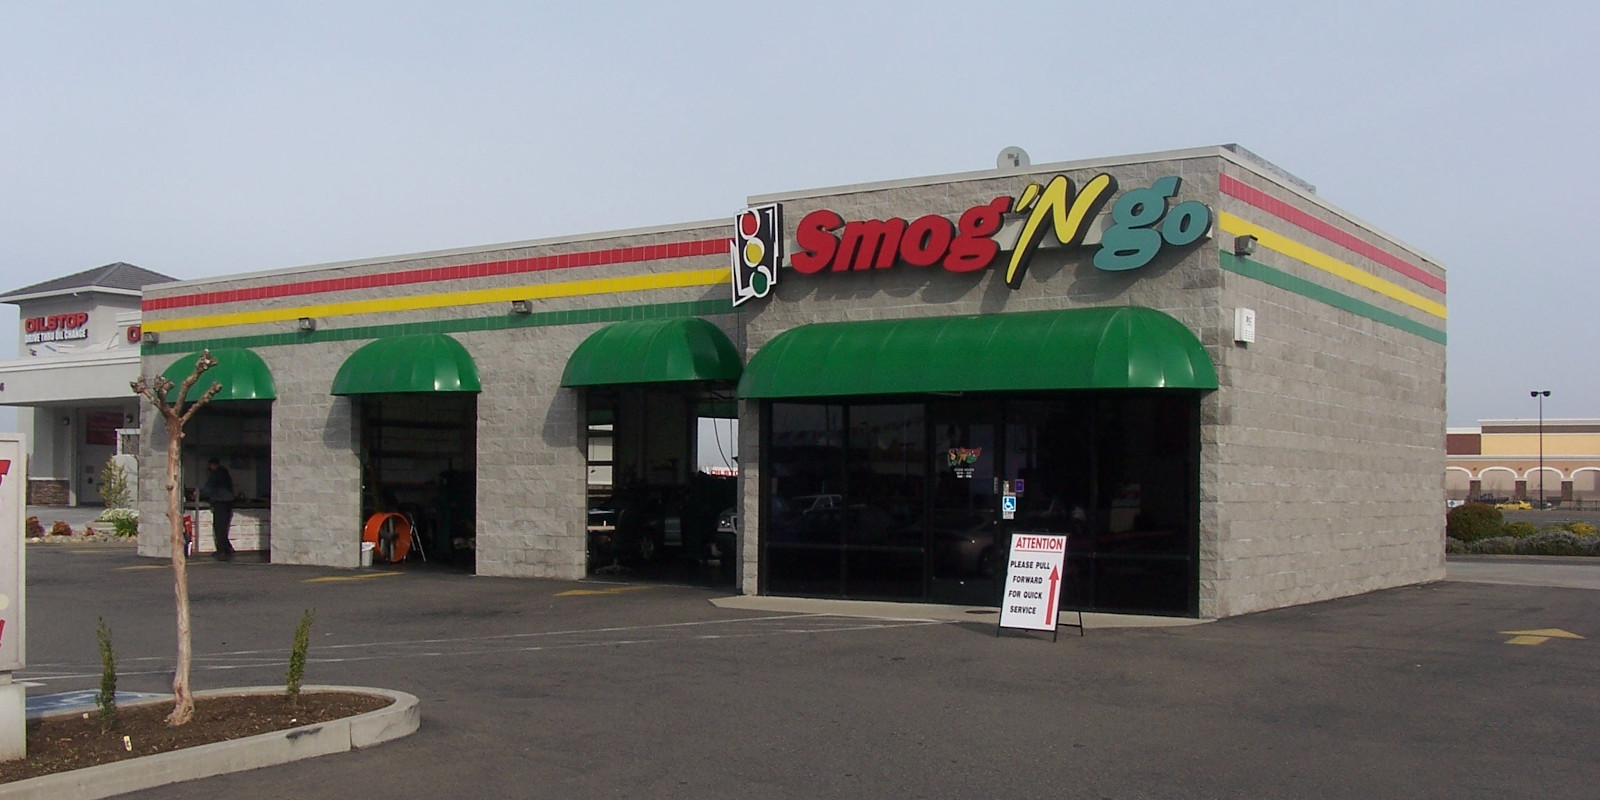 Smog 'N Go in Elk Grove at Calvine and 99